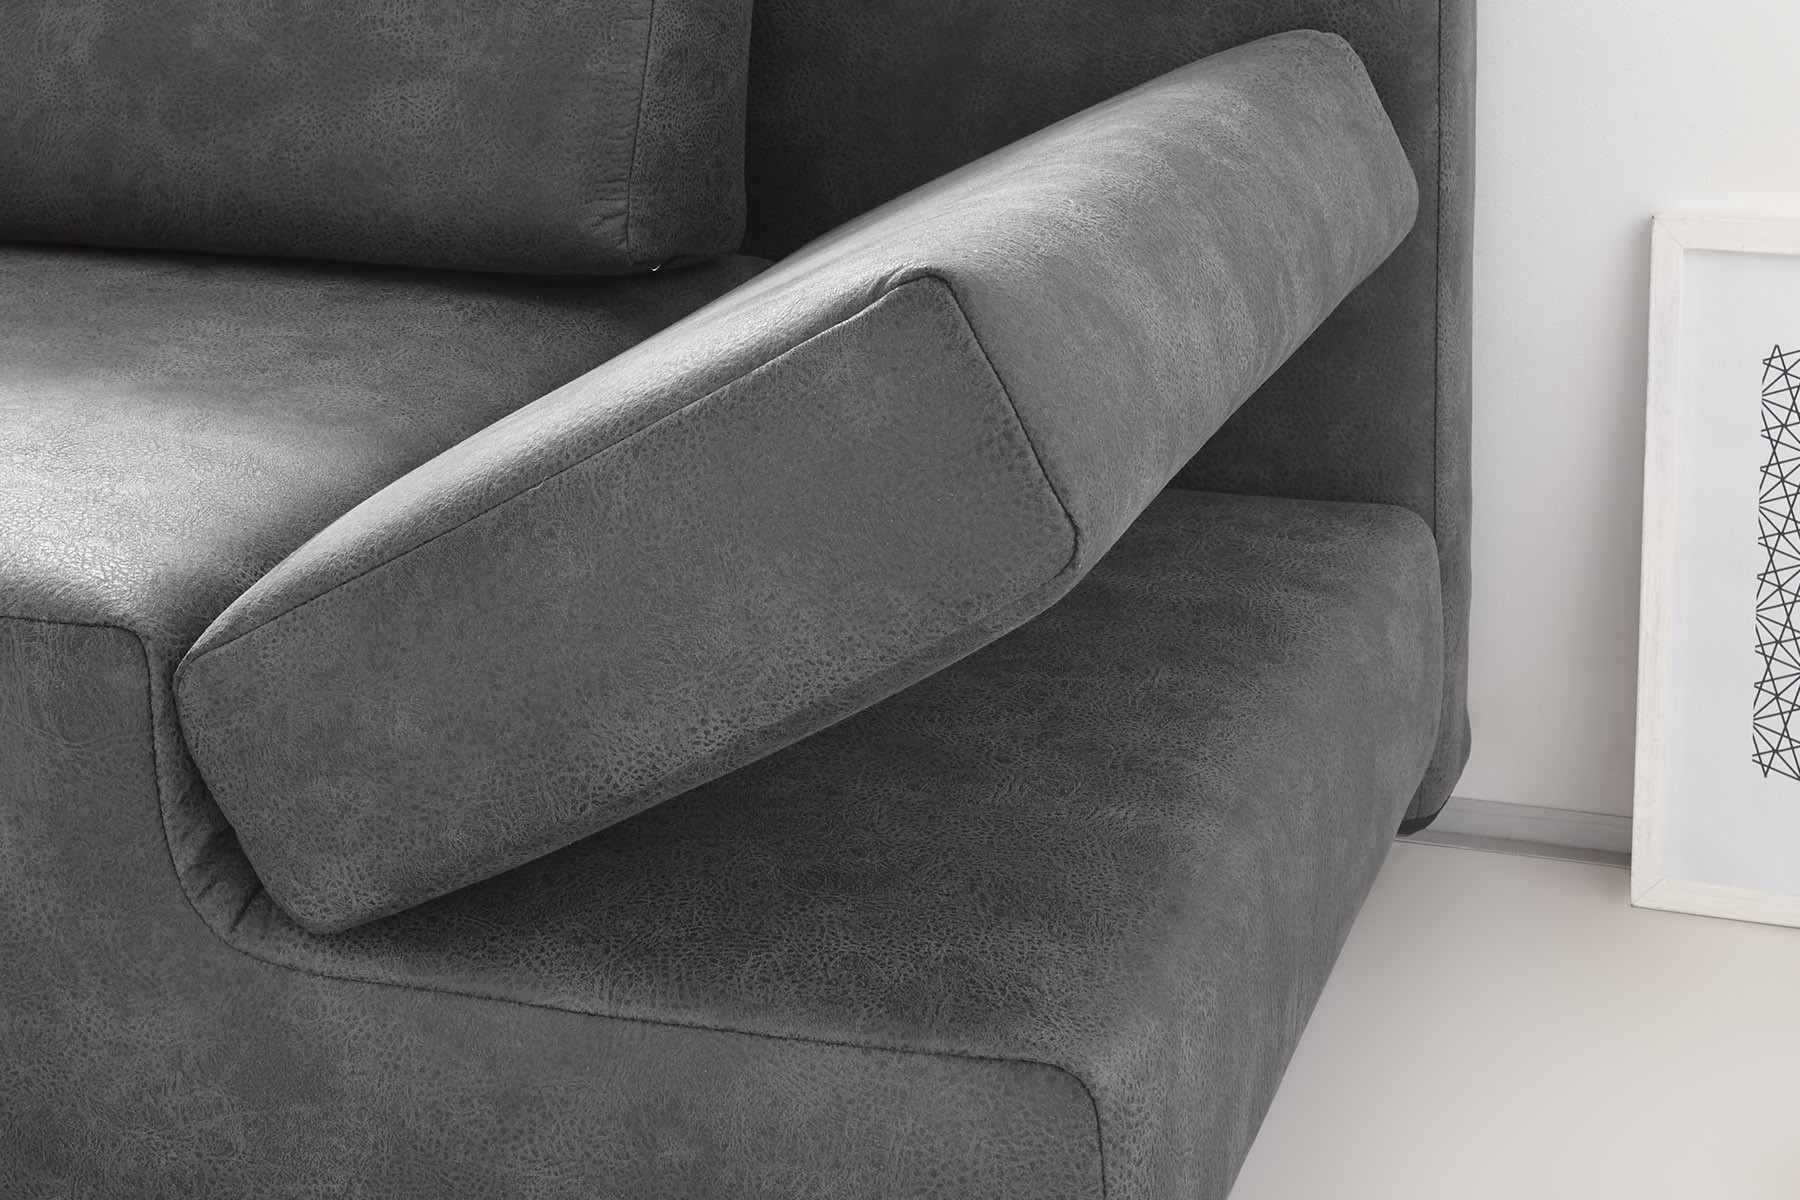 Relaxsofa Mit Motor Relaxsofa Mit Gallery Of Affordable Himolla Trapez Sofa Heimkino